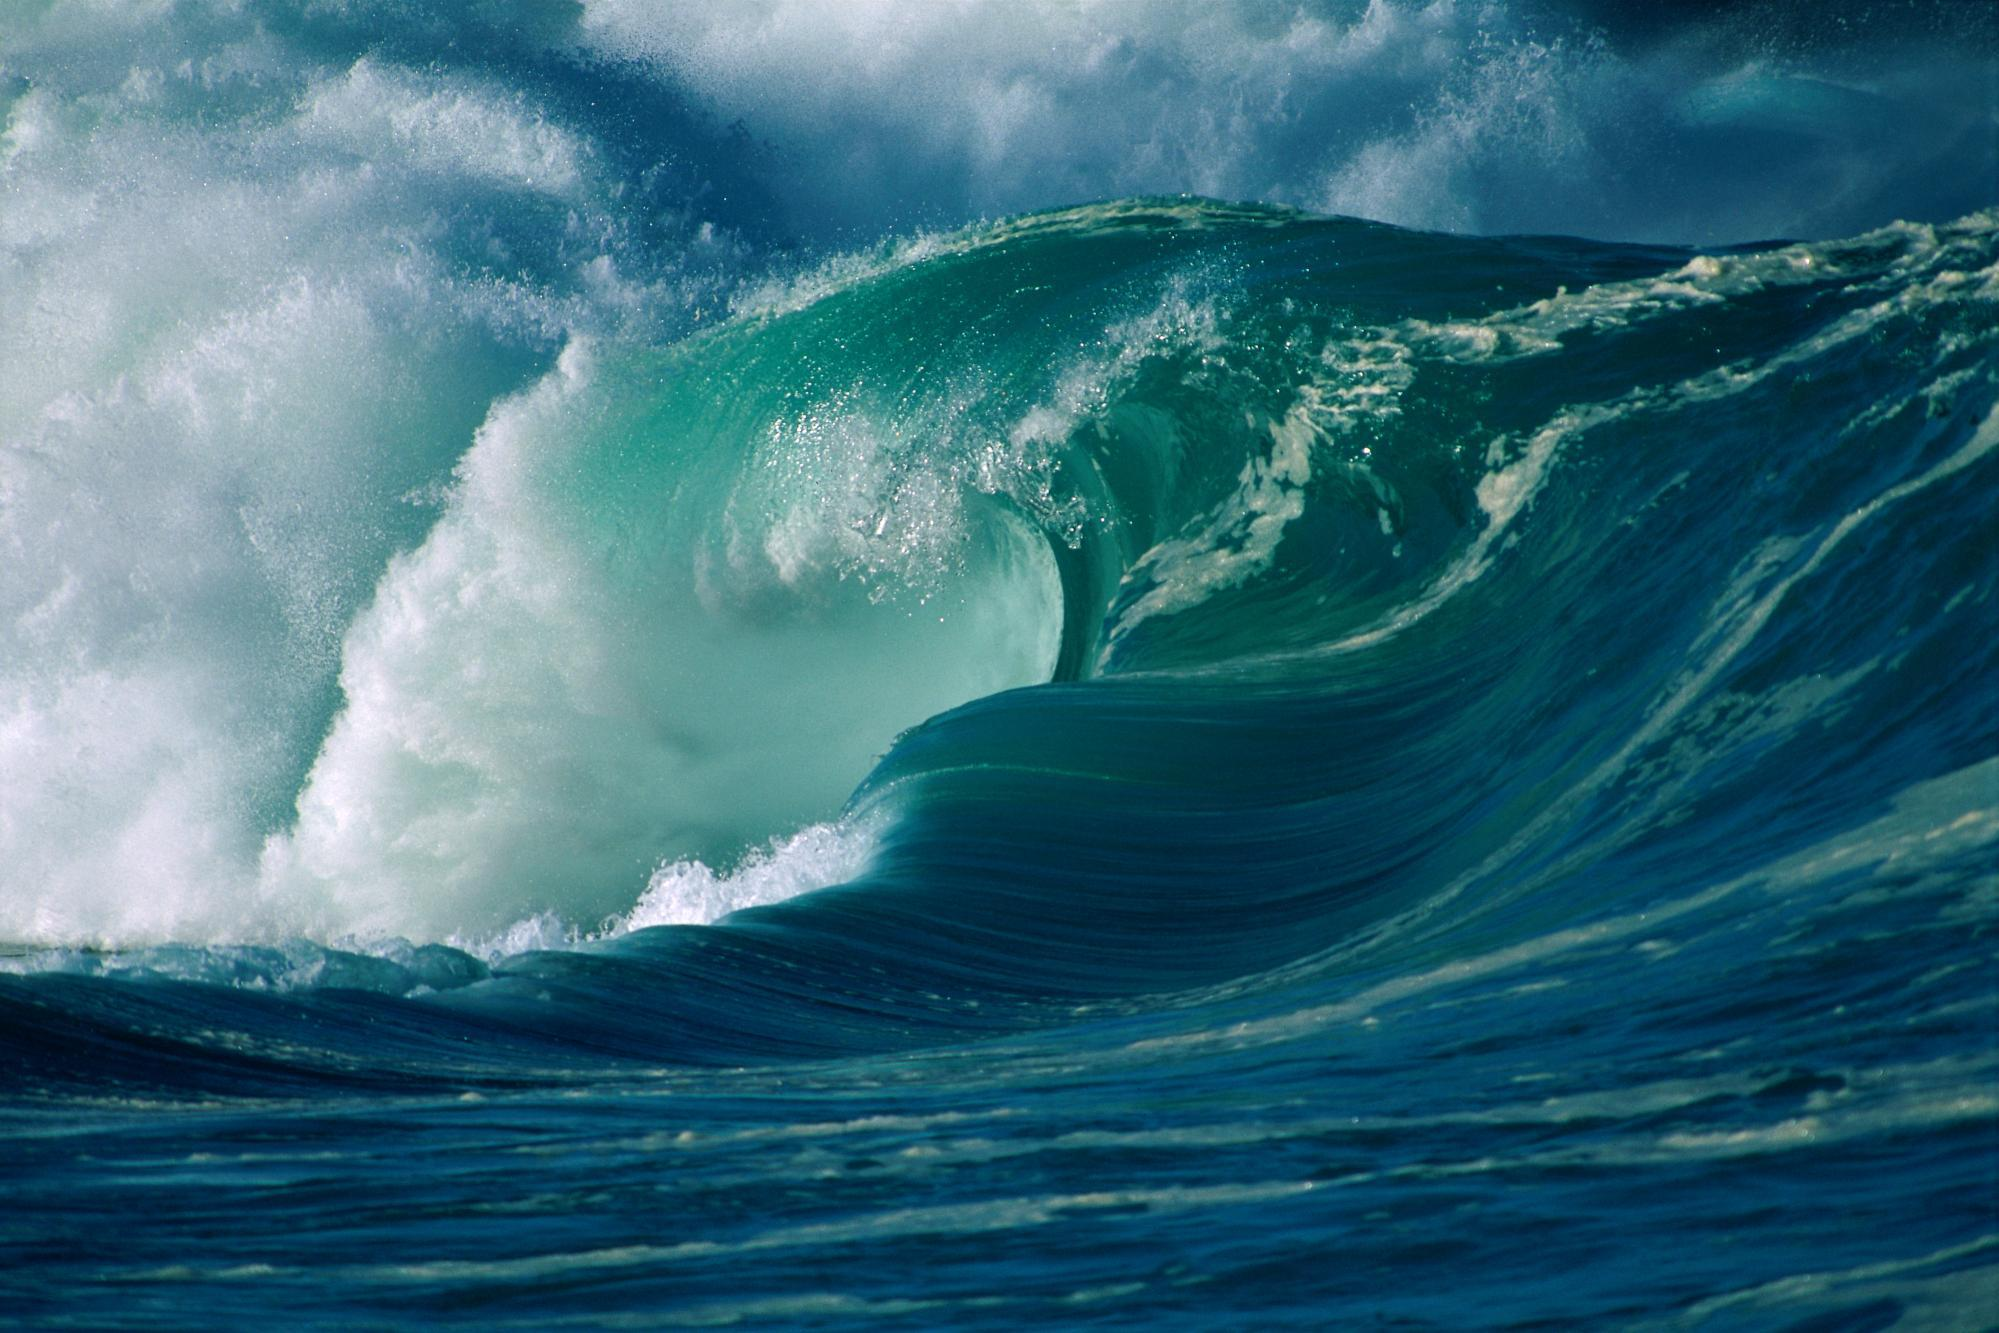 Animated Ocean Waves Wallpaper Wallpapersafari